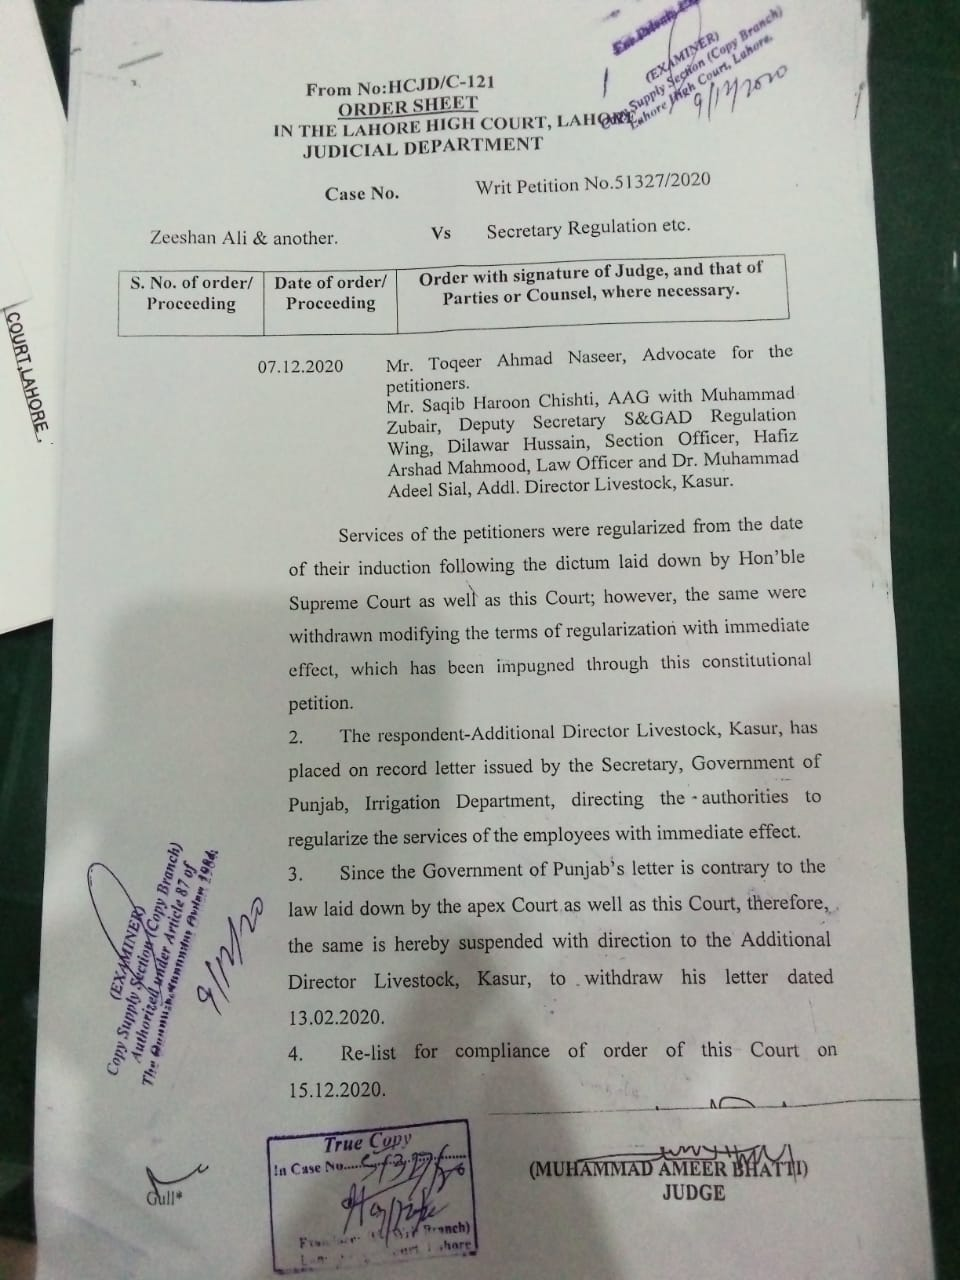 The LHC Lahore Decision of the Dated 07-12-2020